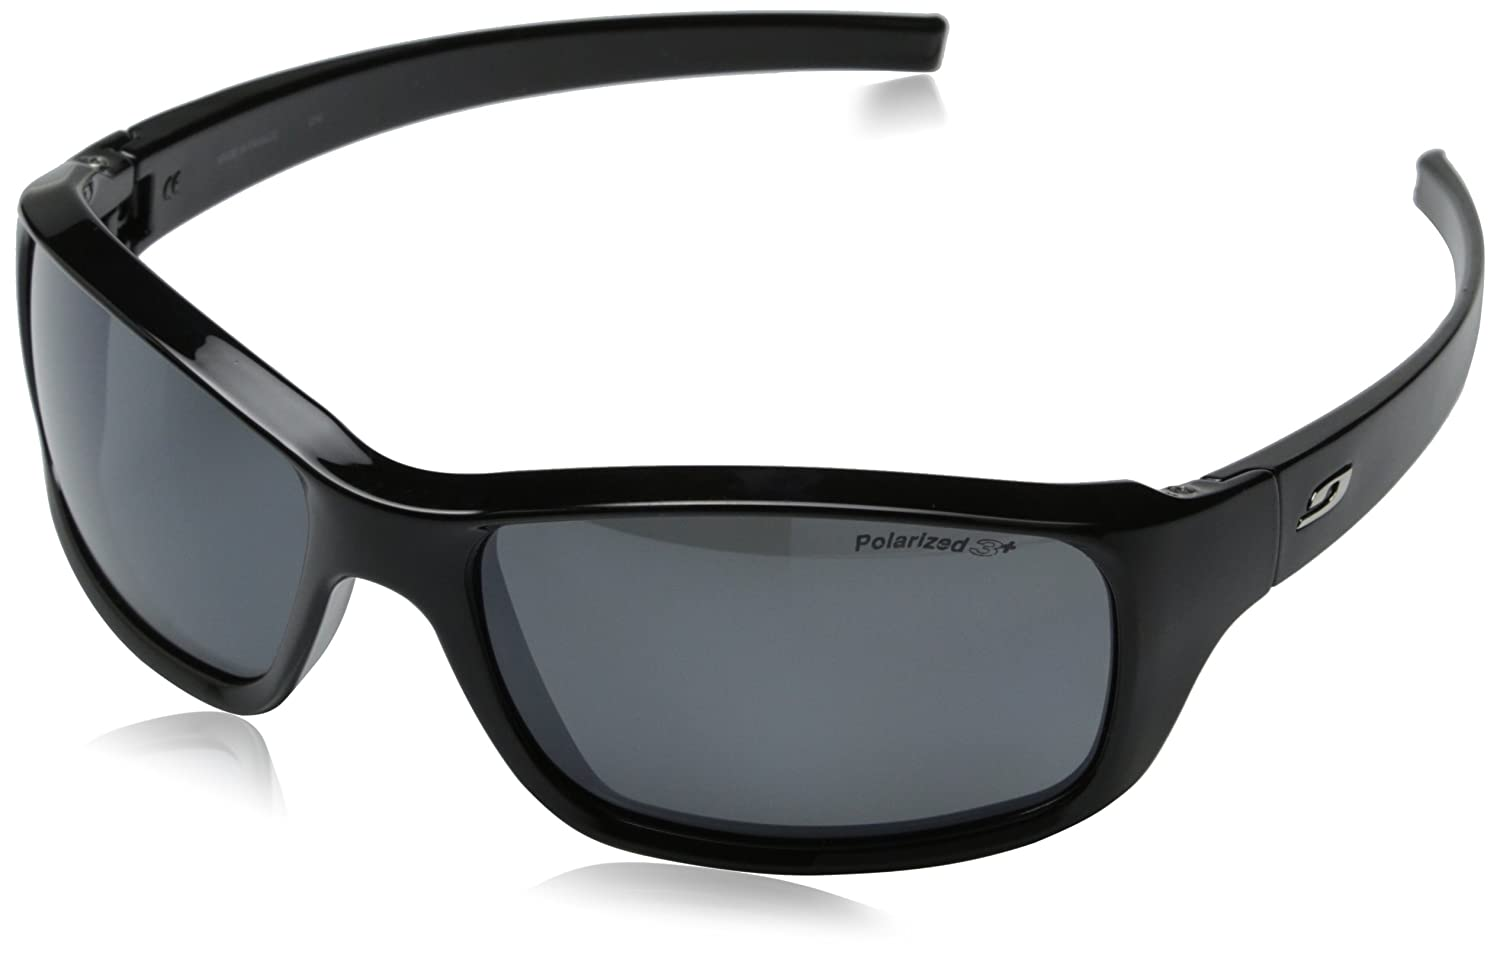 Amazon.com: Julbo Slick Lifestyle Sunglasses, Polarized 3+ ...